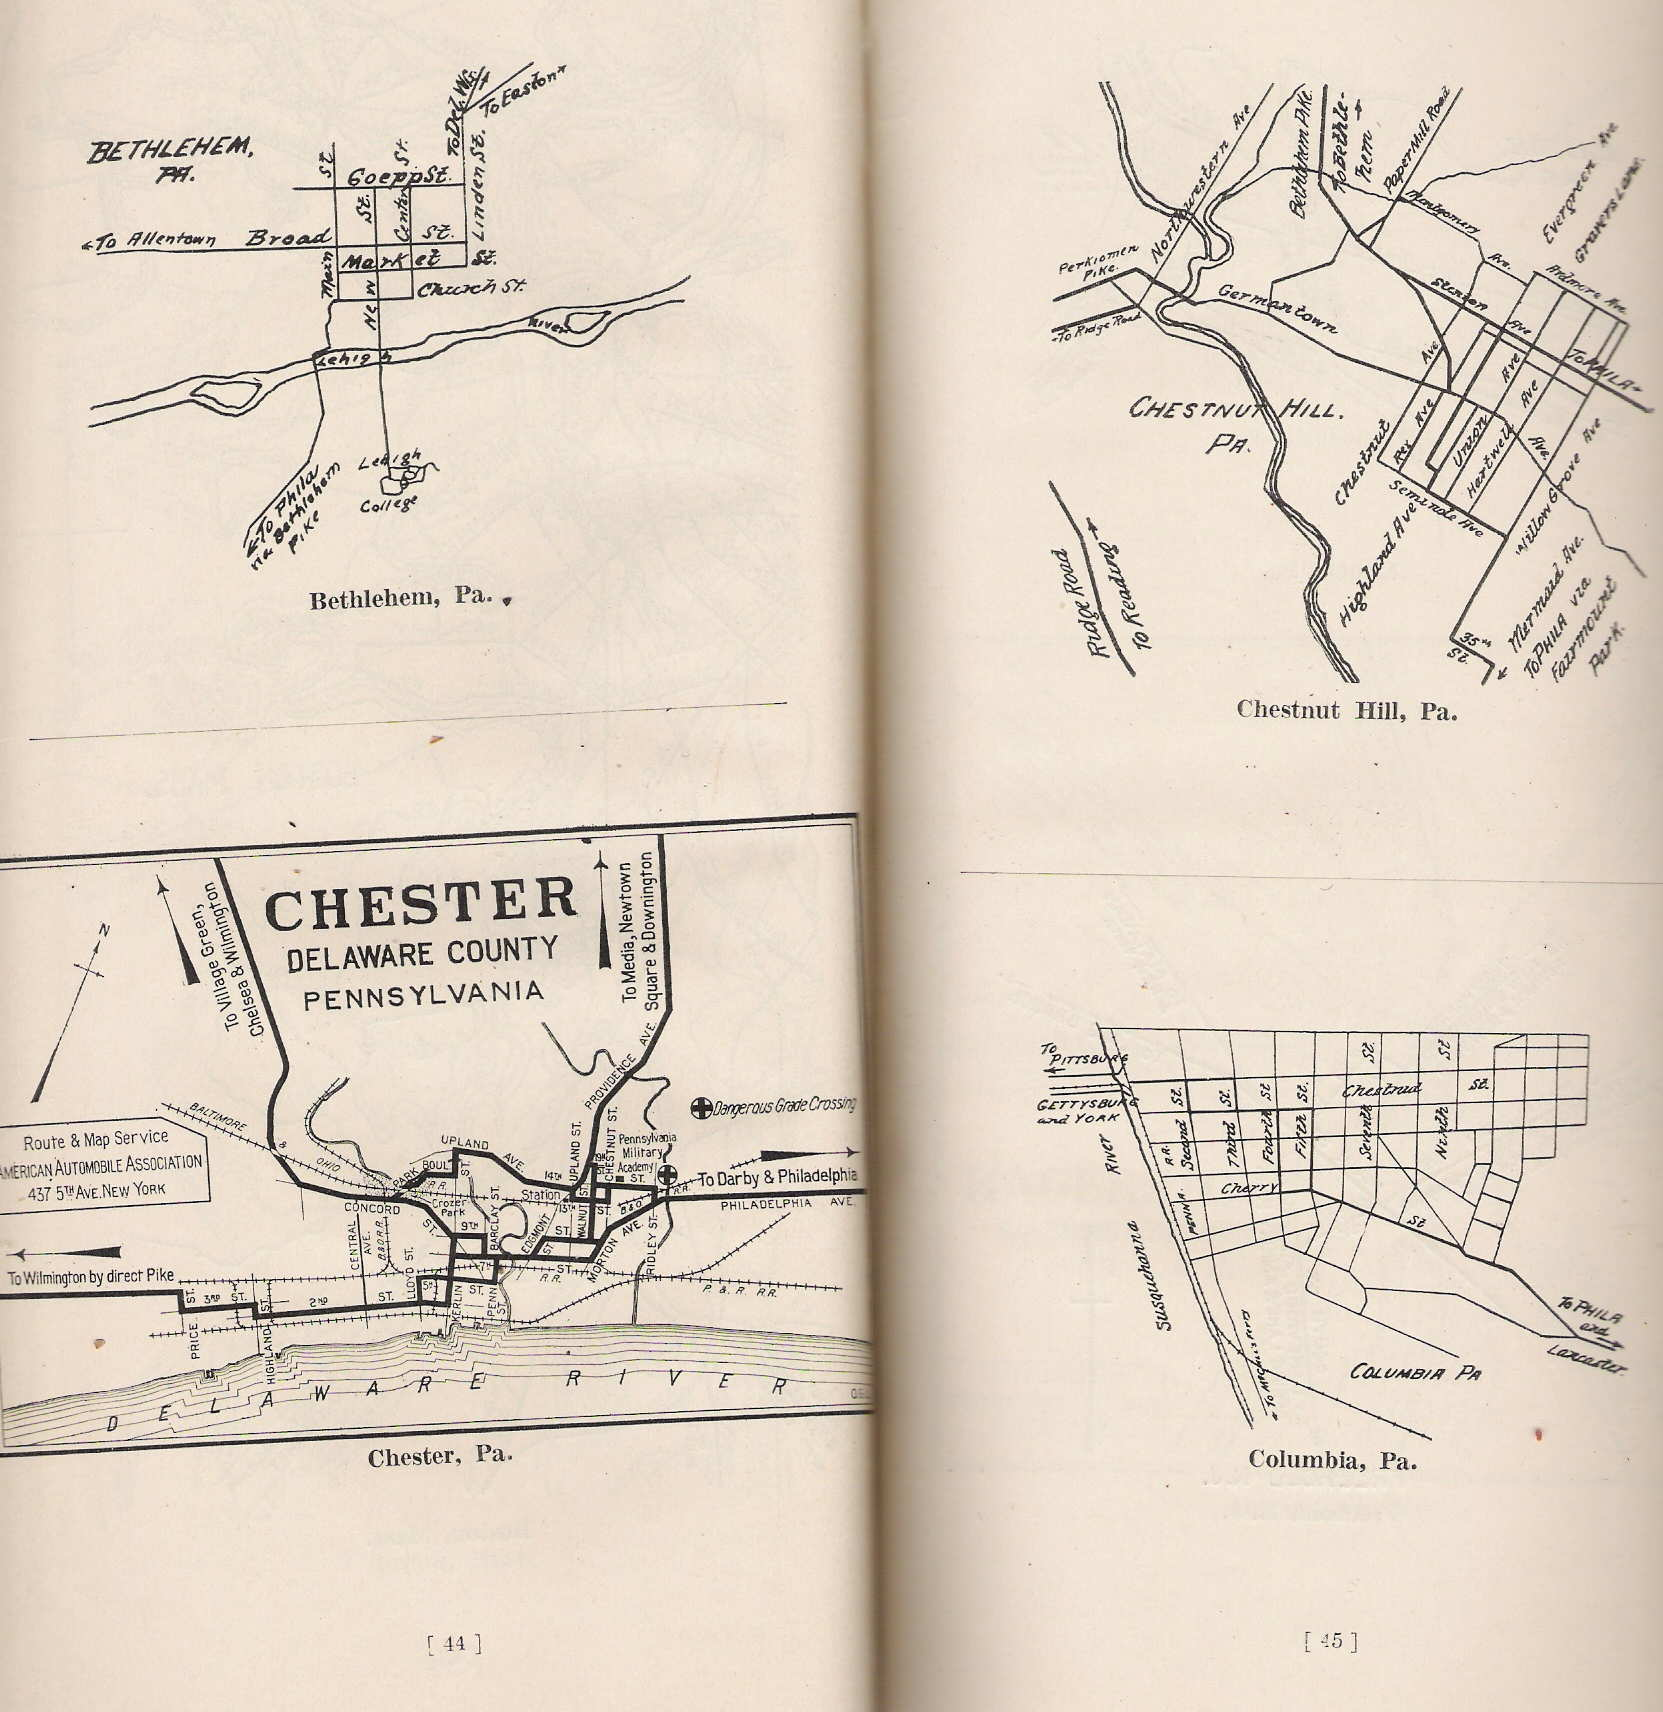 ... The bulk of the book consists of pages of route directions such as pages 140-141 , with routes from Mt. Pocono to Philadelphia and Philadelphia to ...